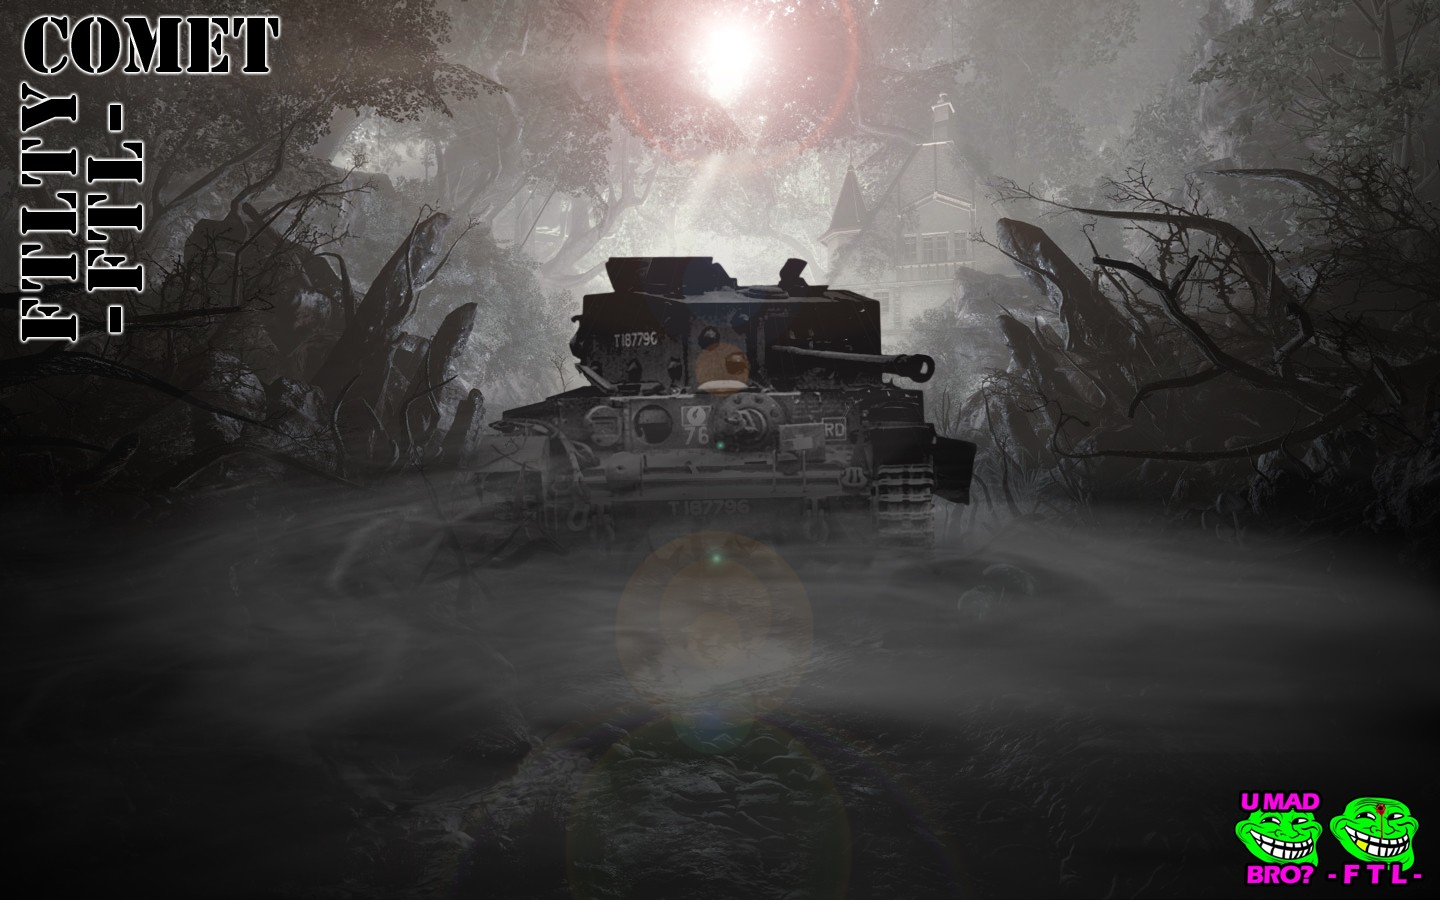 COMET LIGHT TANK FTL FTLTY CLAN WORLD OF TANKS FATALITY FATAL1TY